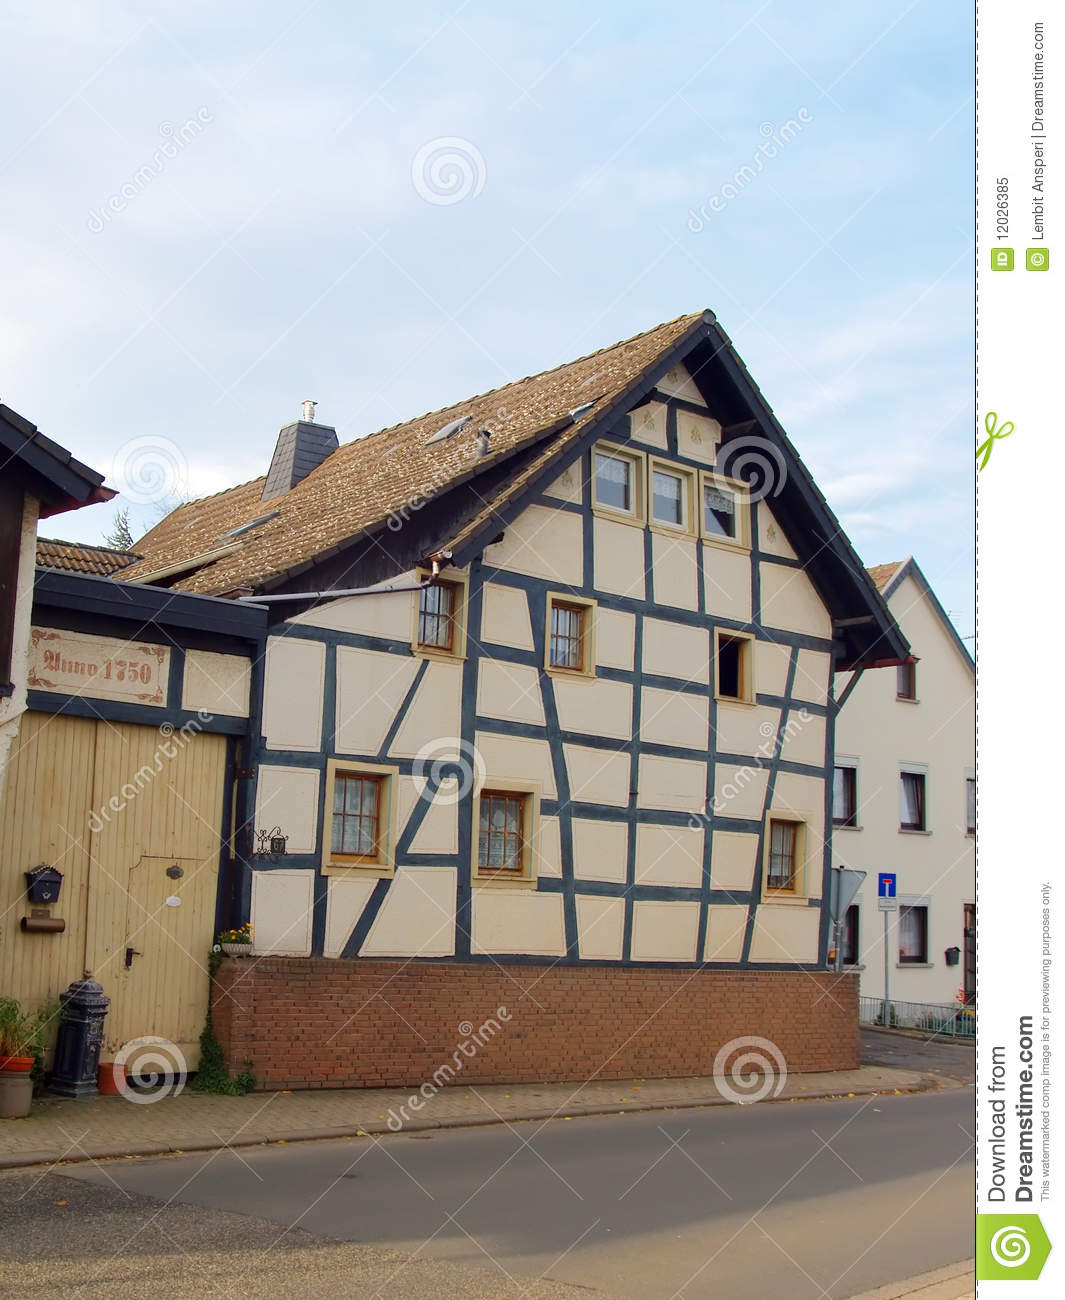 Ancient half timbered house in germany royalty free stock for Half timbered house plans